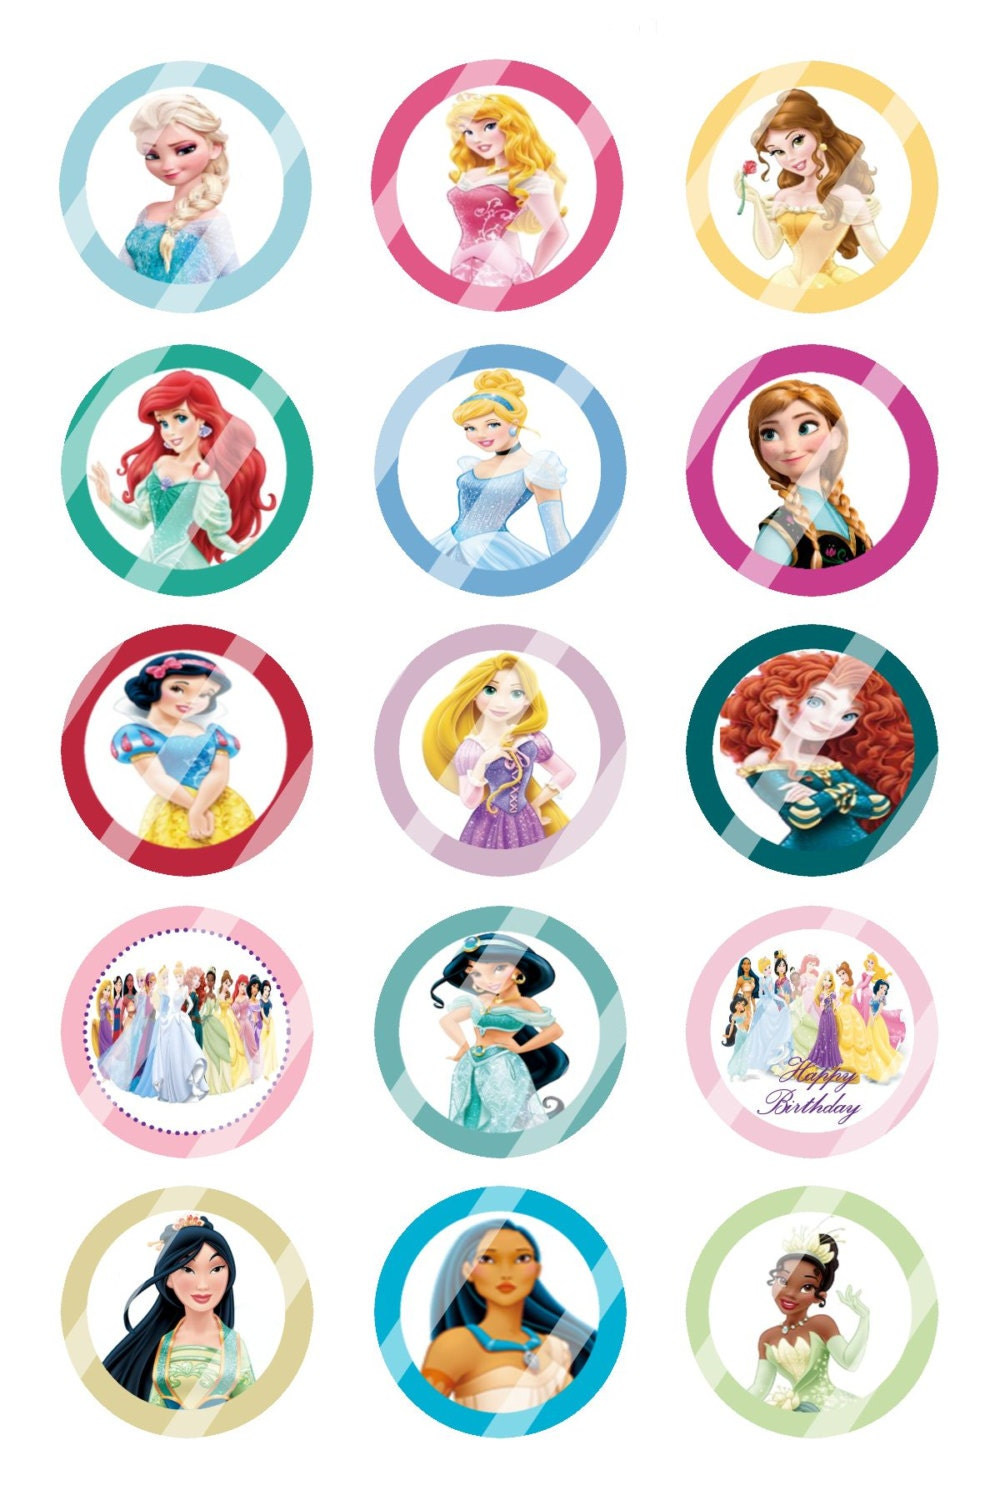 baby photo collage ideas download - Disney Princess Custom Birthday Party 1 inch Circles Confetti